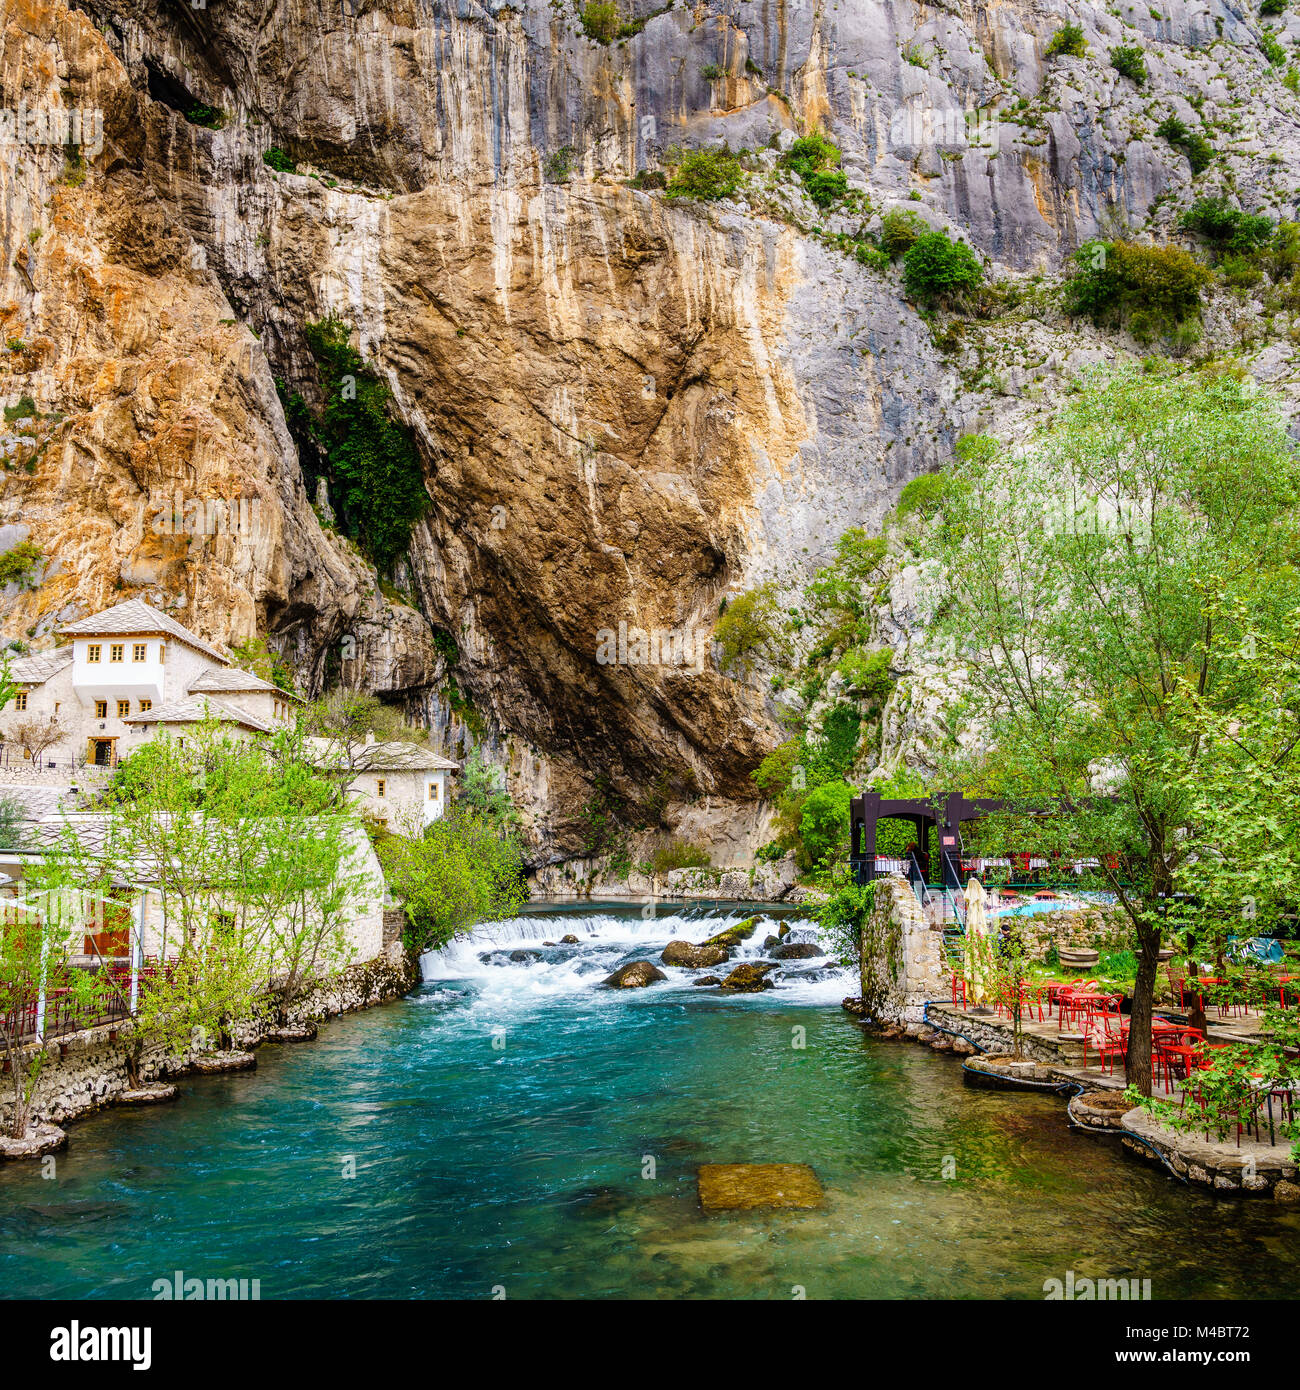 Dervish monastery or tekke at the Buna River spring in the town of Blagaj, Bosnia - Stock Image